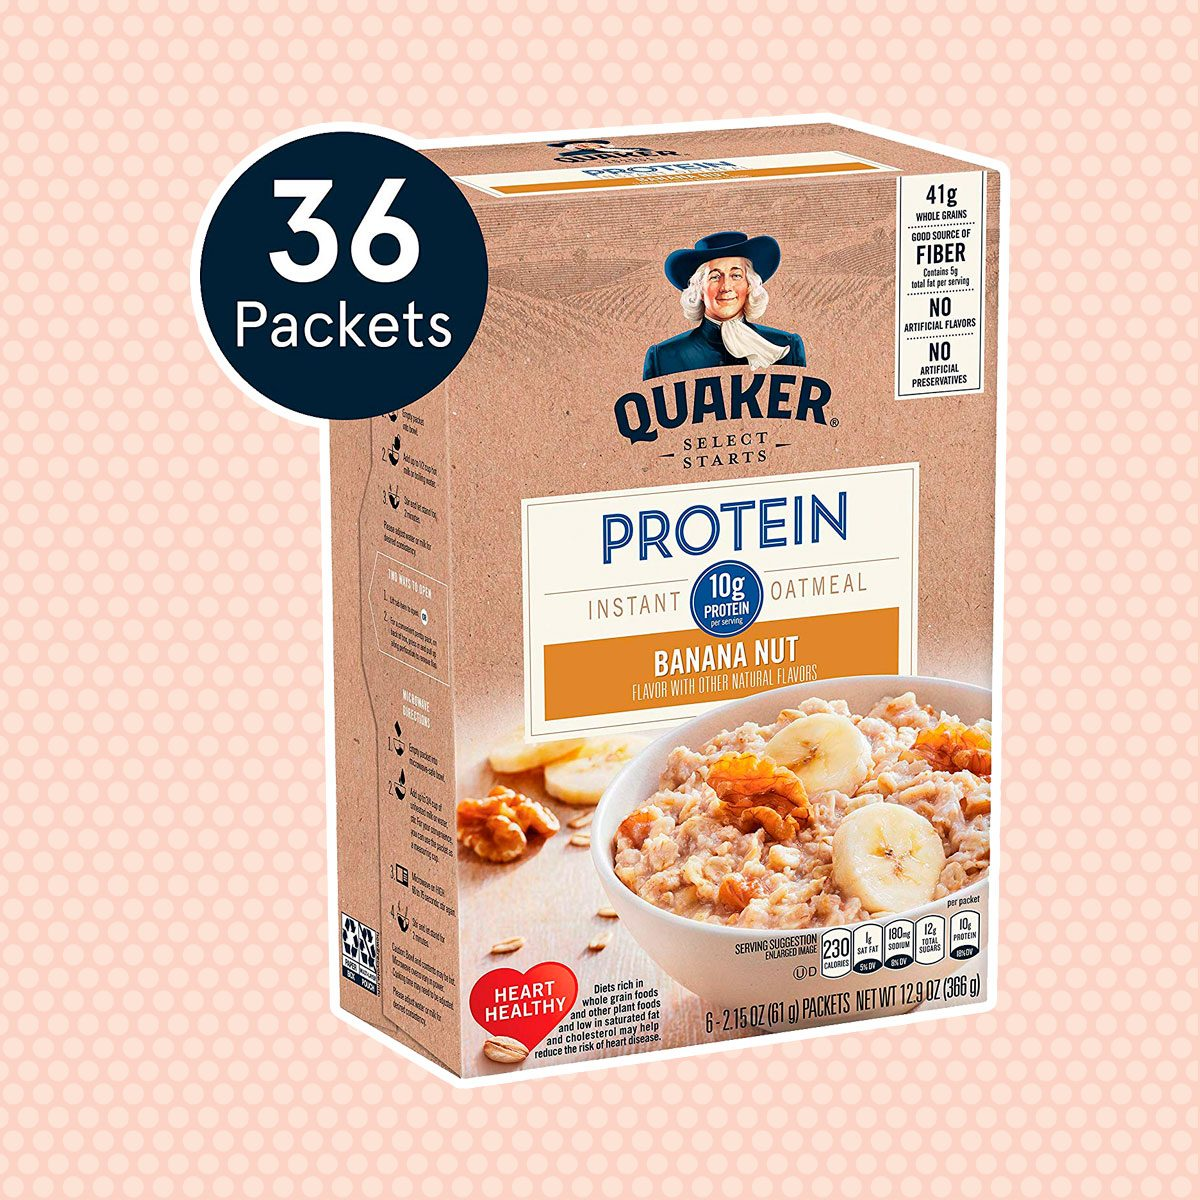 Quaker Protein Instant Oatmeal Packet